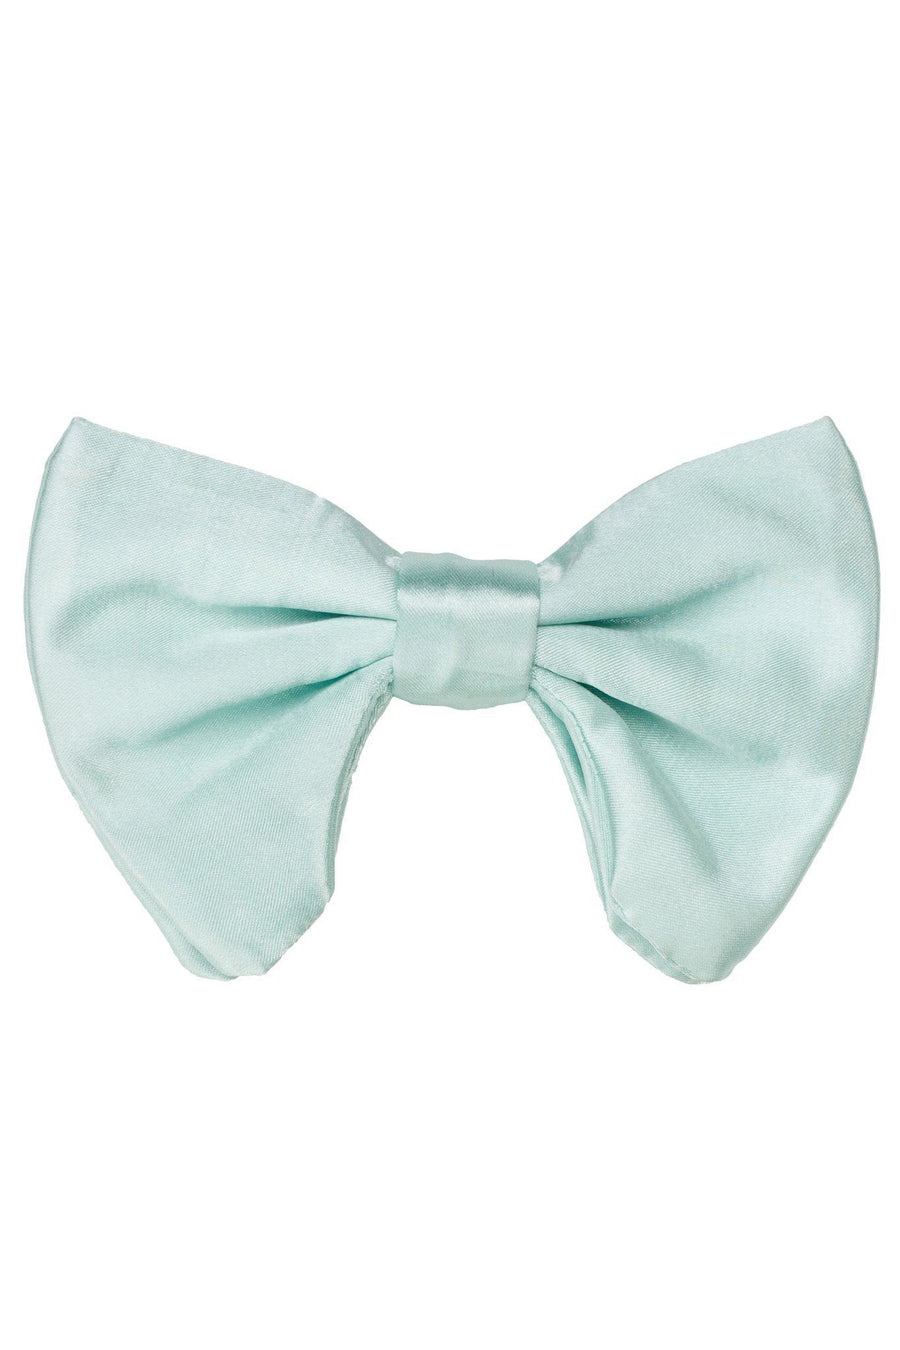 Avant Garde Bowtie - Mint Satin - PROJECT 6, modest fashion